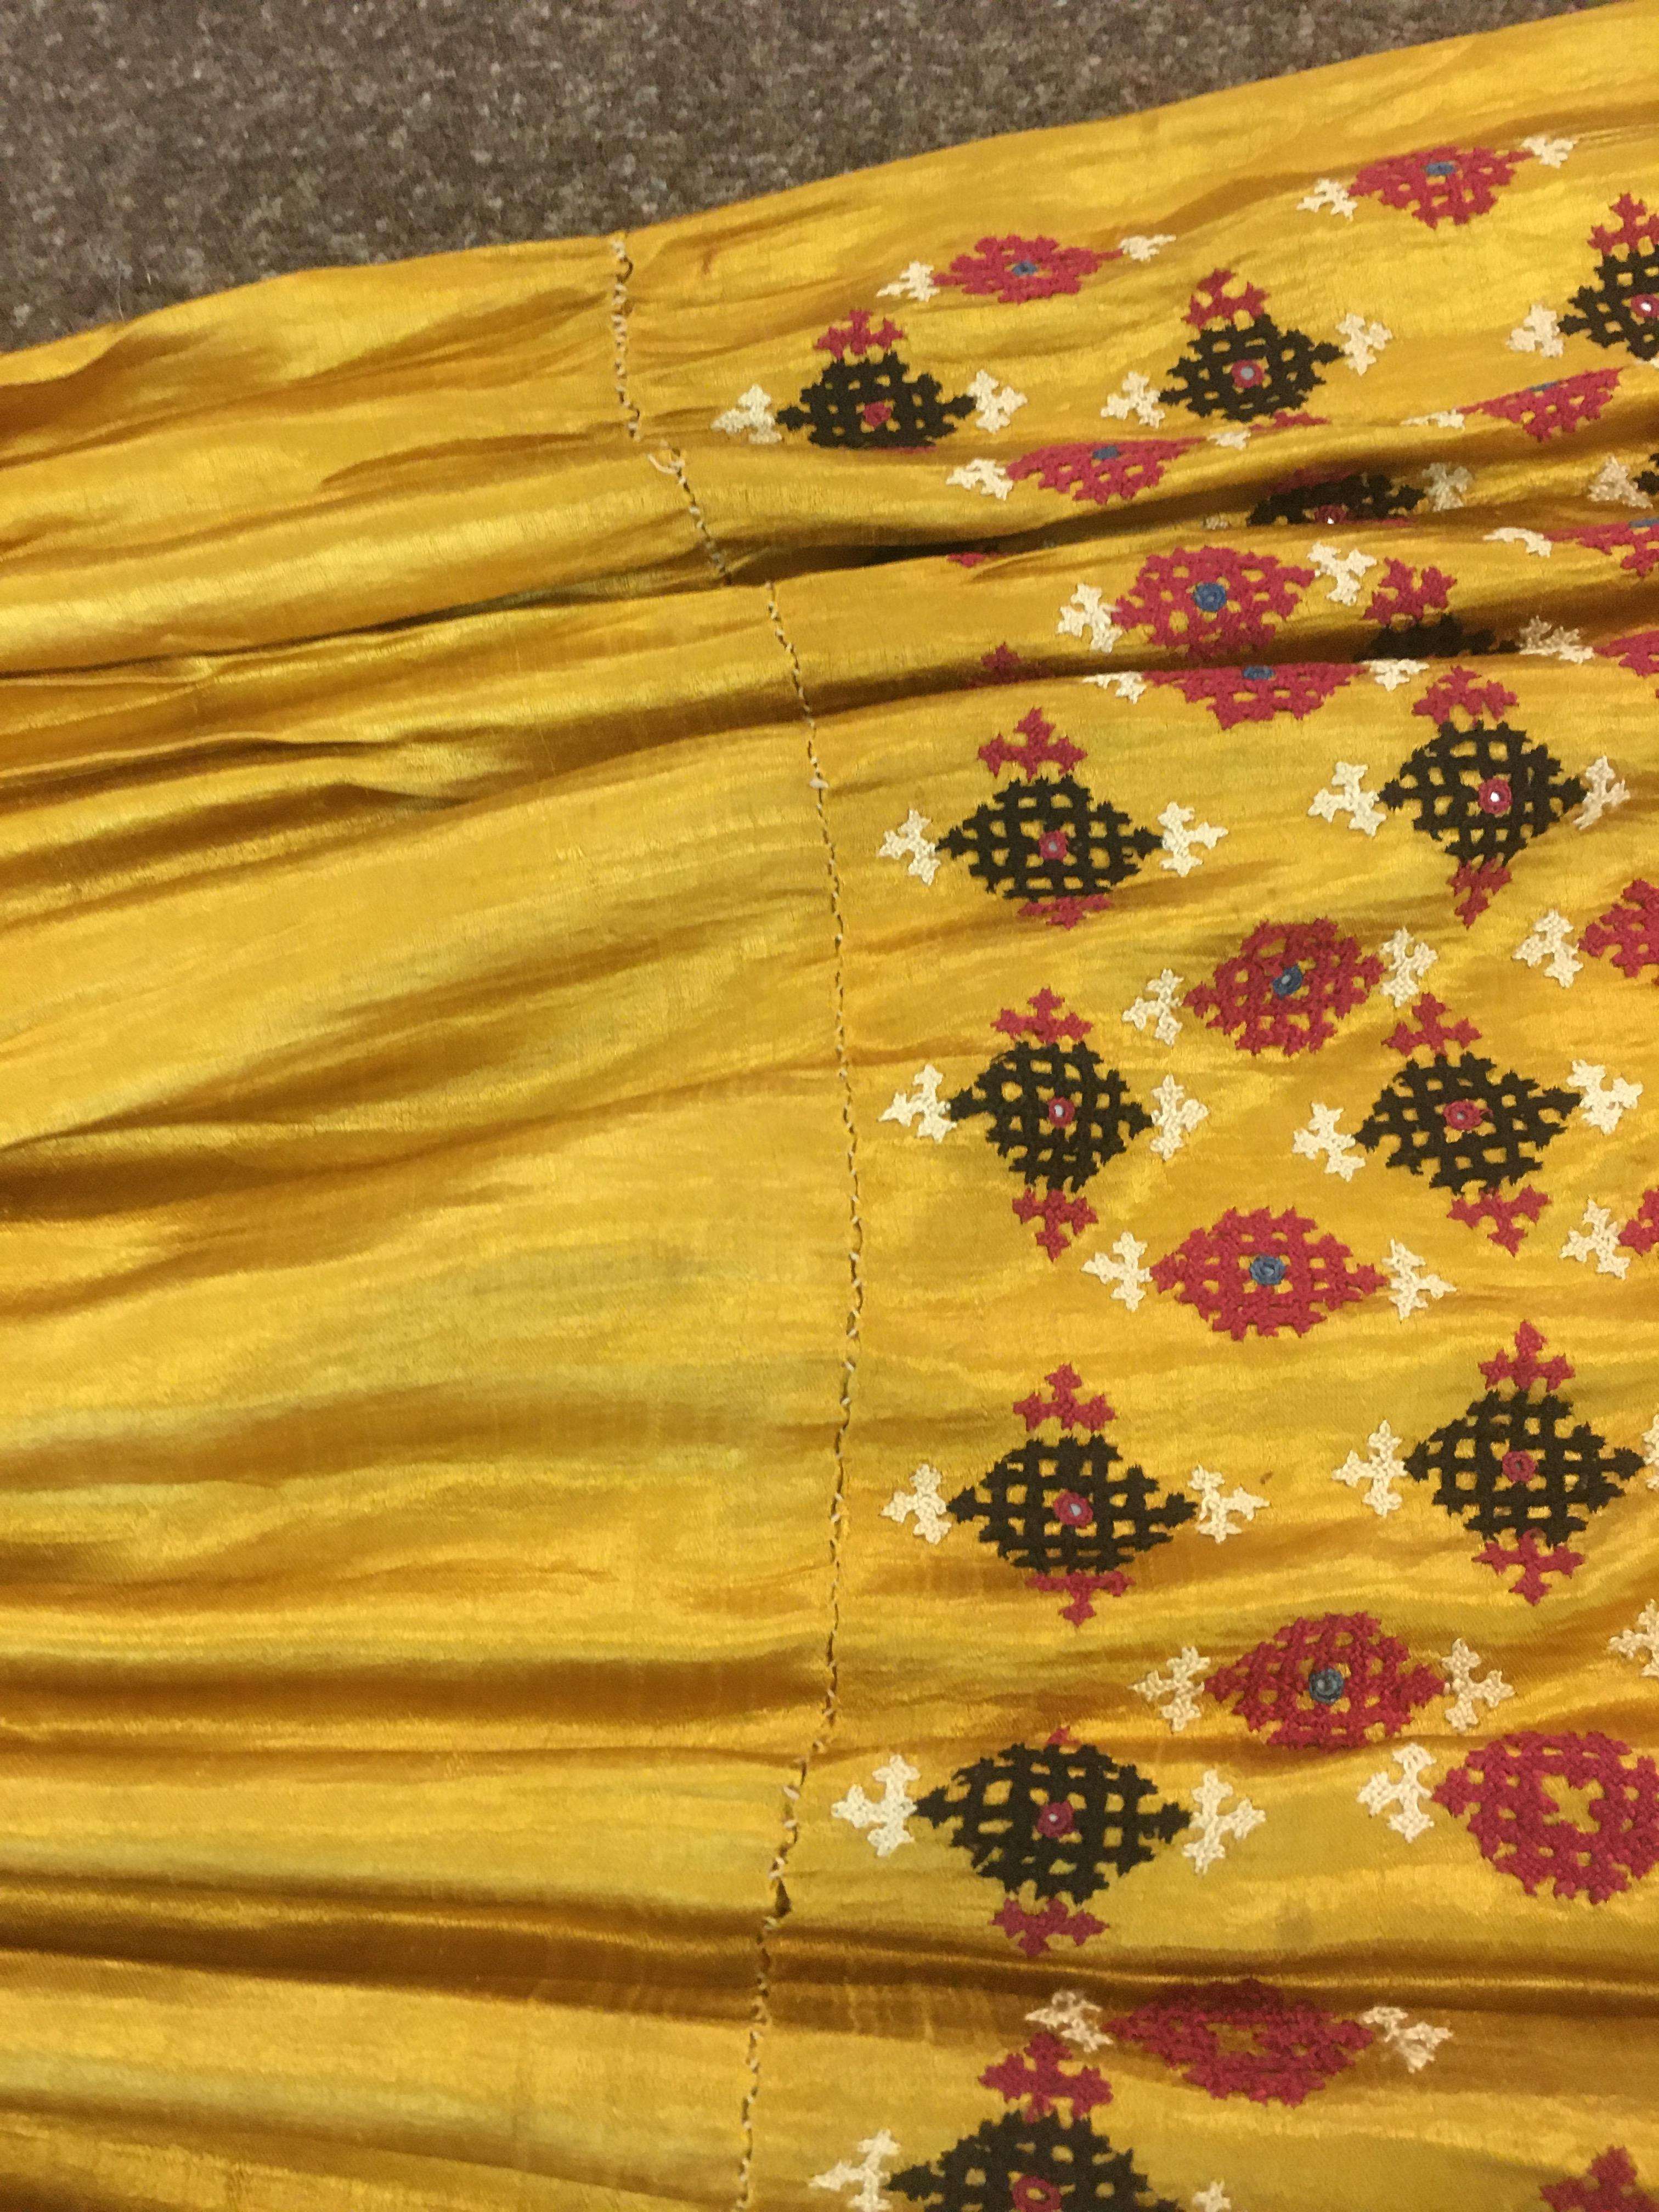 Lot 1890 - ANTIQUE INDIAN SKIRT a full length gathered skirt made from 19thc gold coloured silk, embroidered